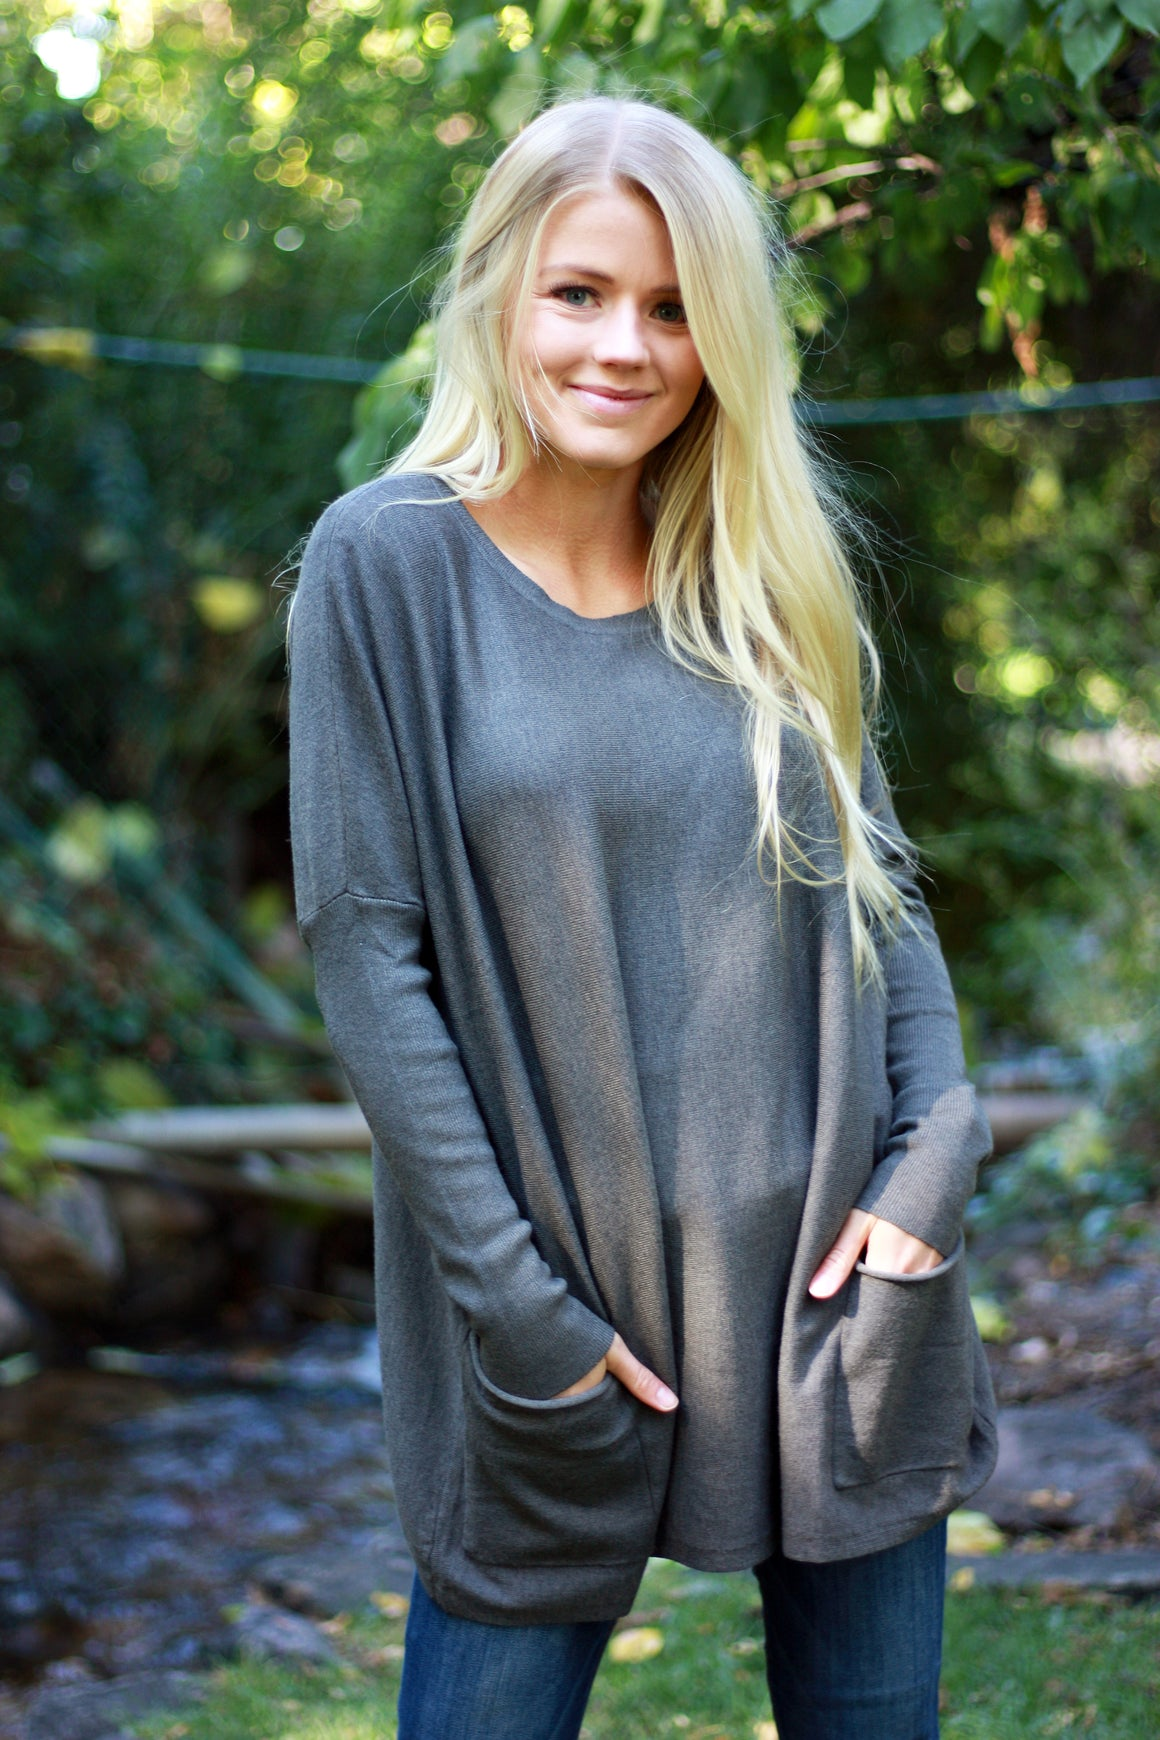 MAREN OVER-SIZED SWEATER IN CHARCOAL